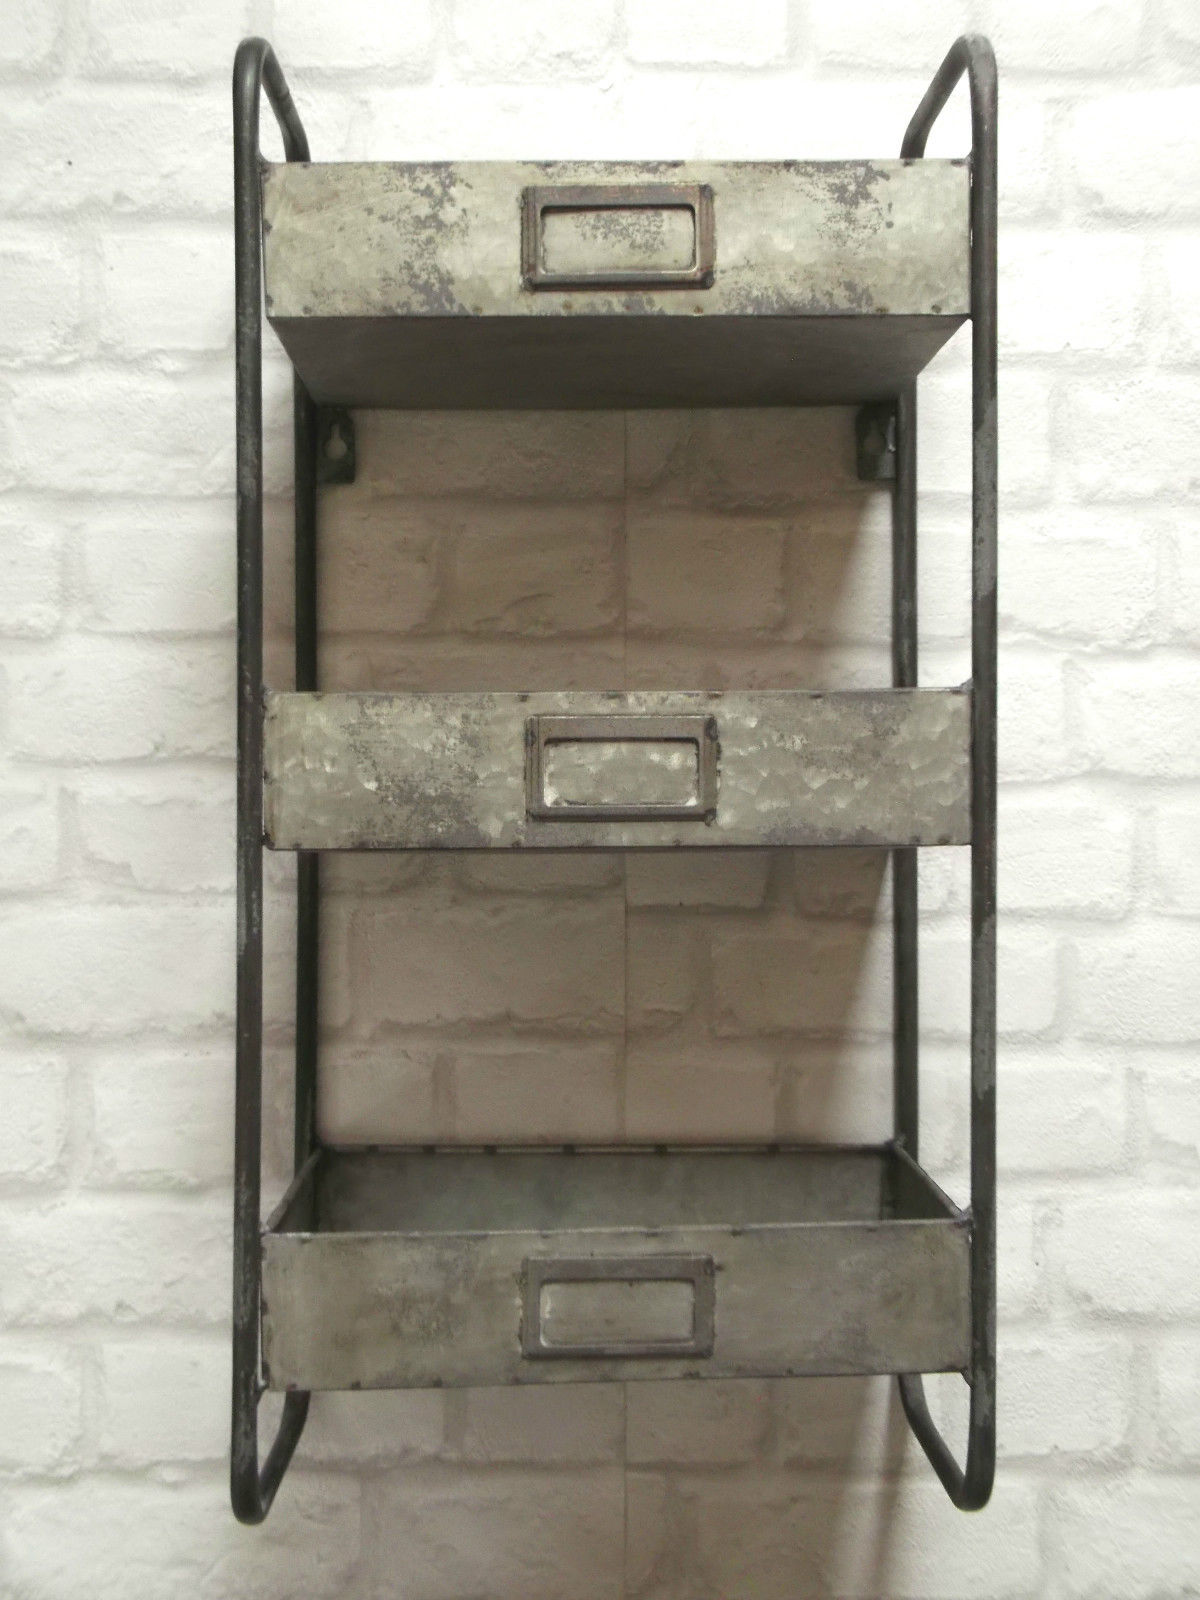 Vintage Industrial Style Metal Wall Shelf Unit Storage